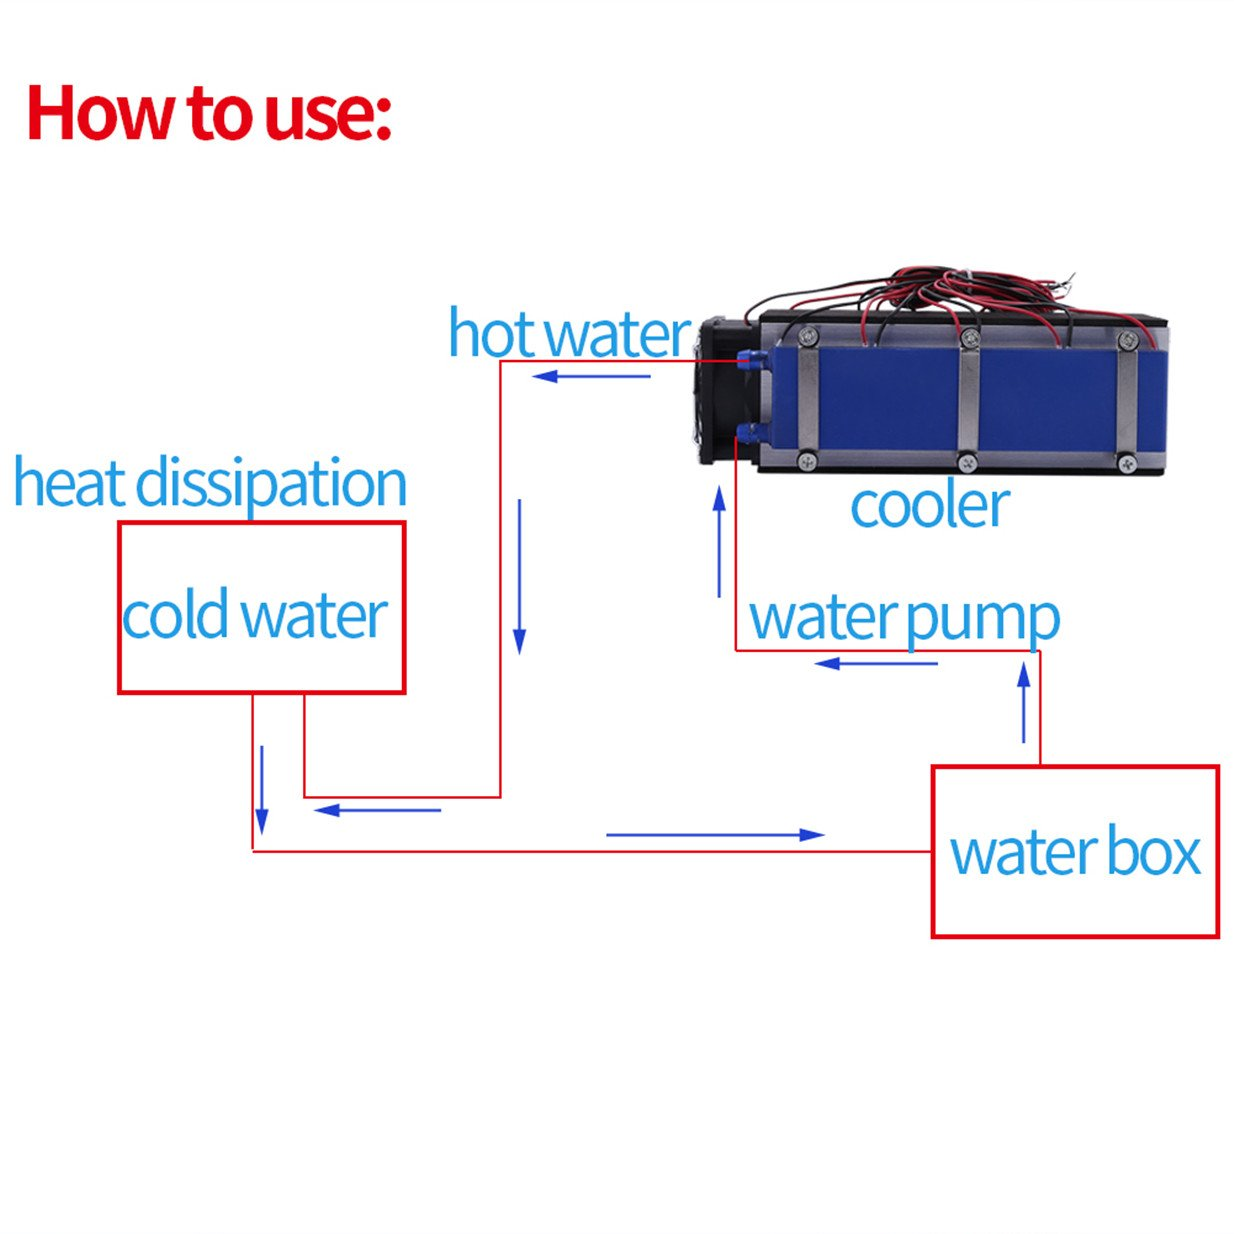 Mini Air Conditioner,DC 12V 576W 8-Chip TEC1-12706 DIY Thermoelectric Cooler Air Cooling Device by Walfront (Image #3)